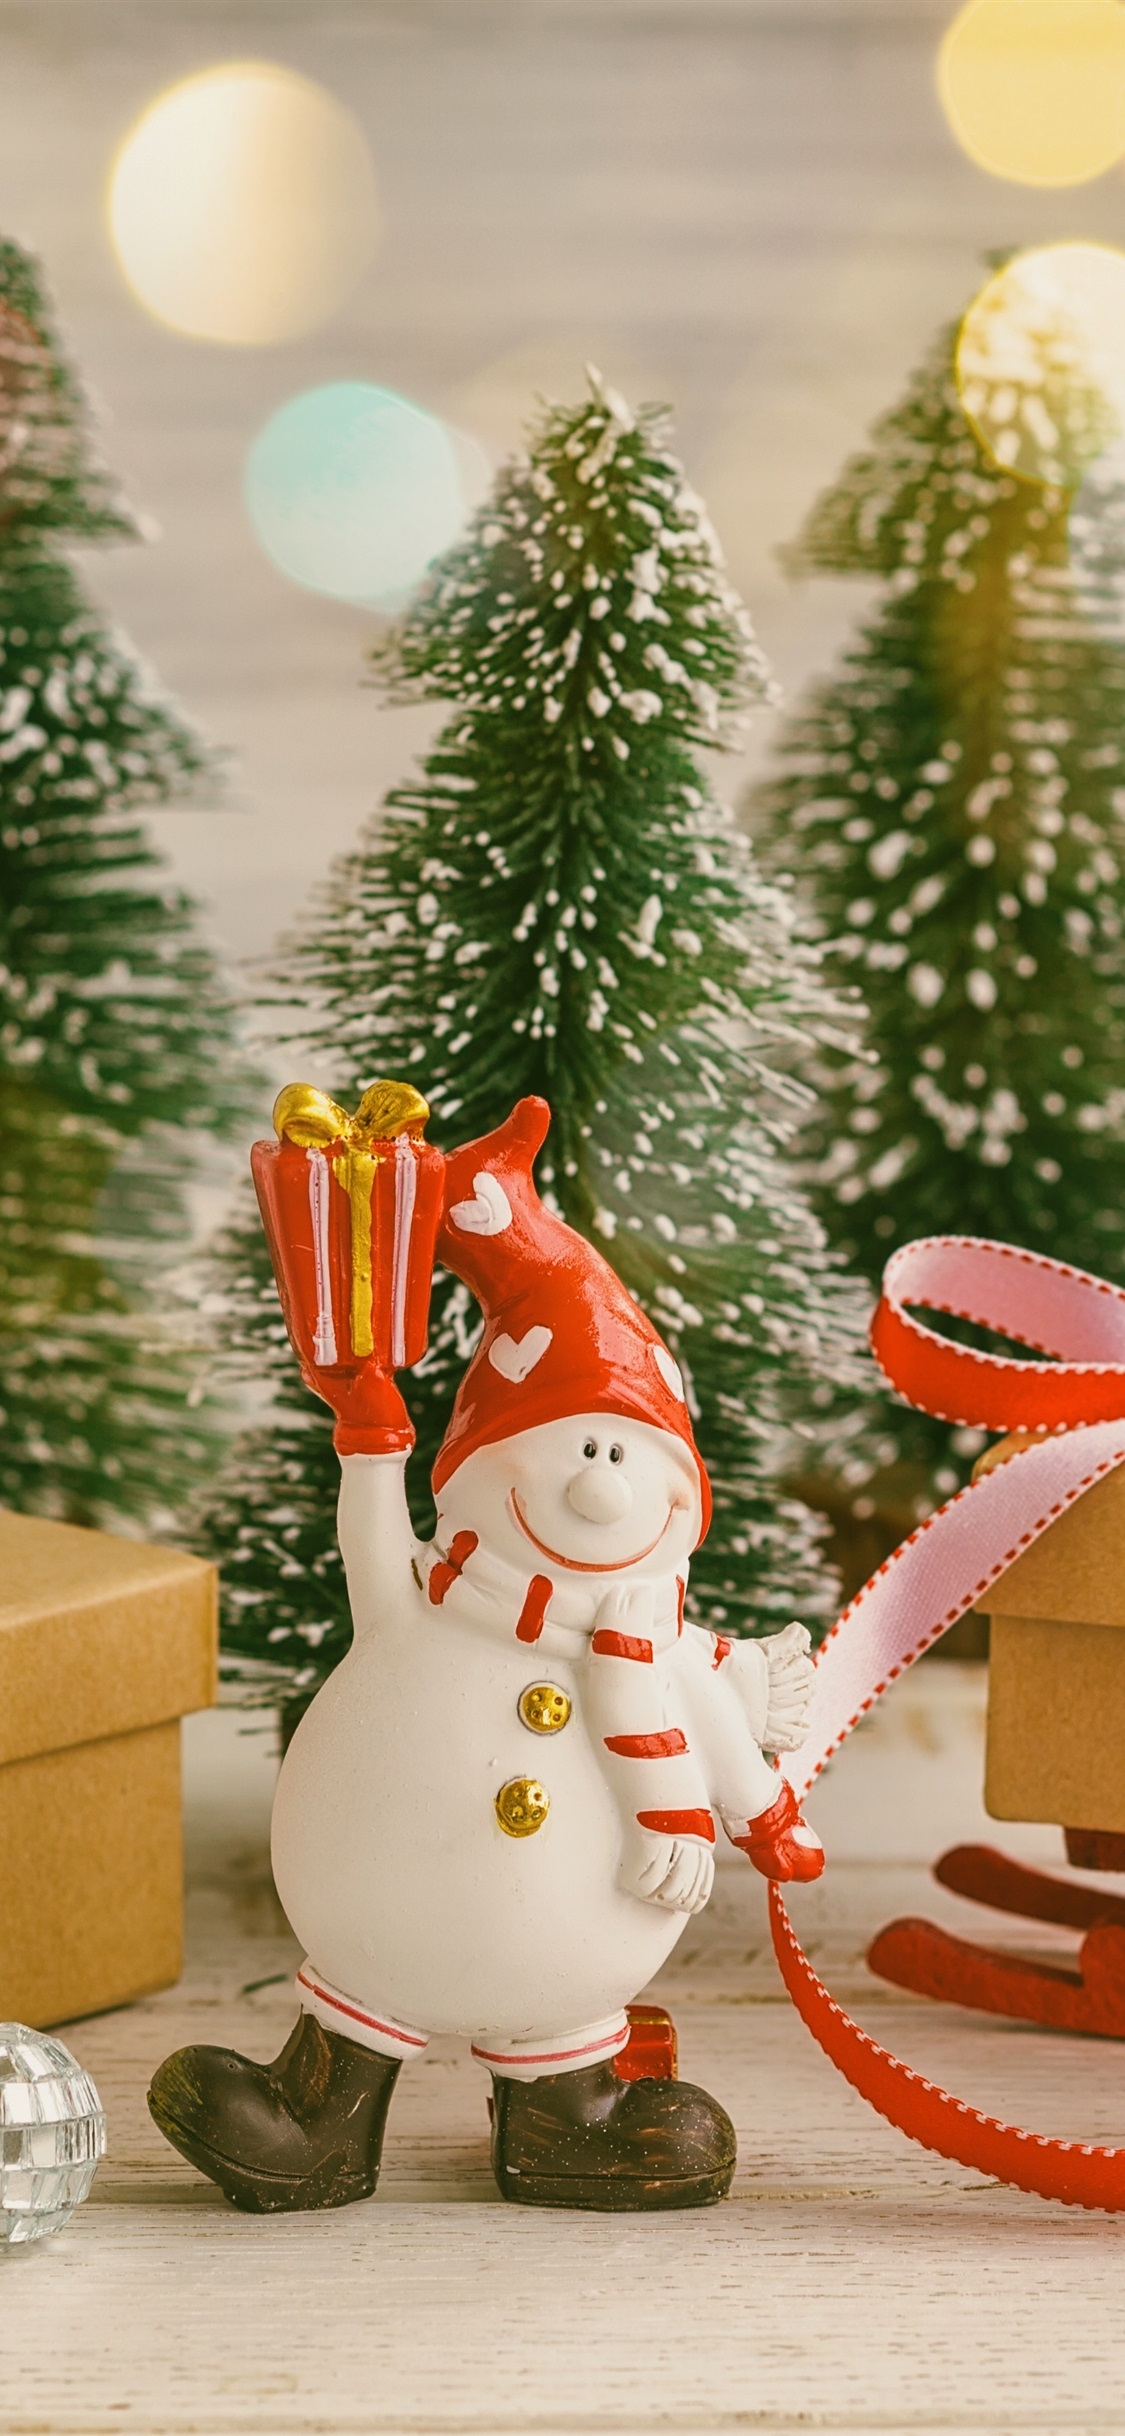 Gift Snowman Toy Christmas Trees 1125x2436 Iphone Xs X